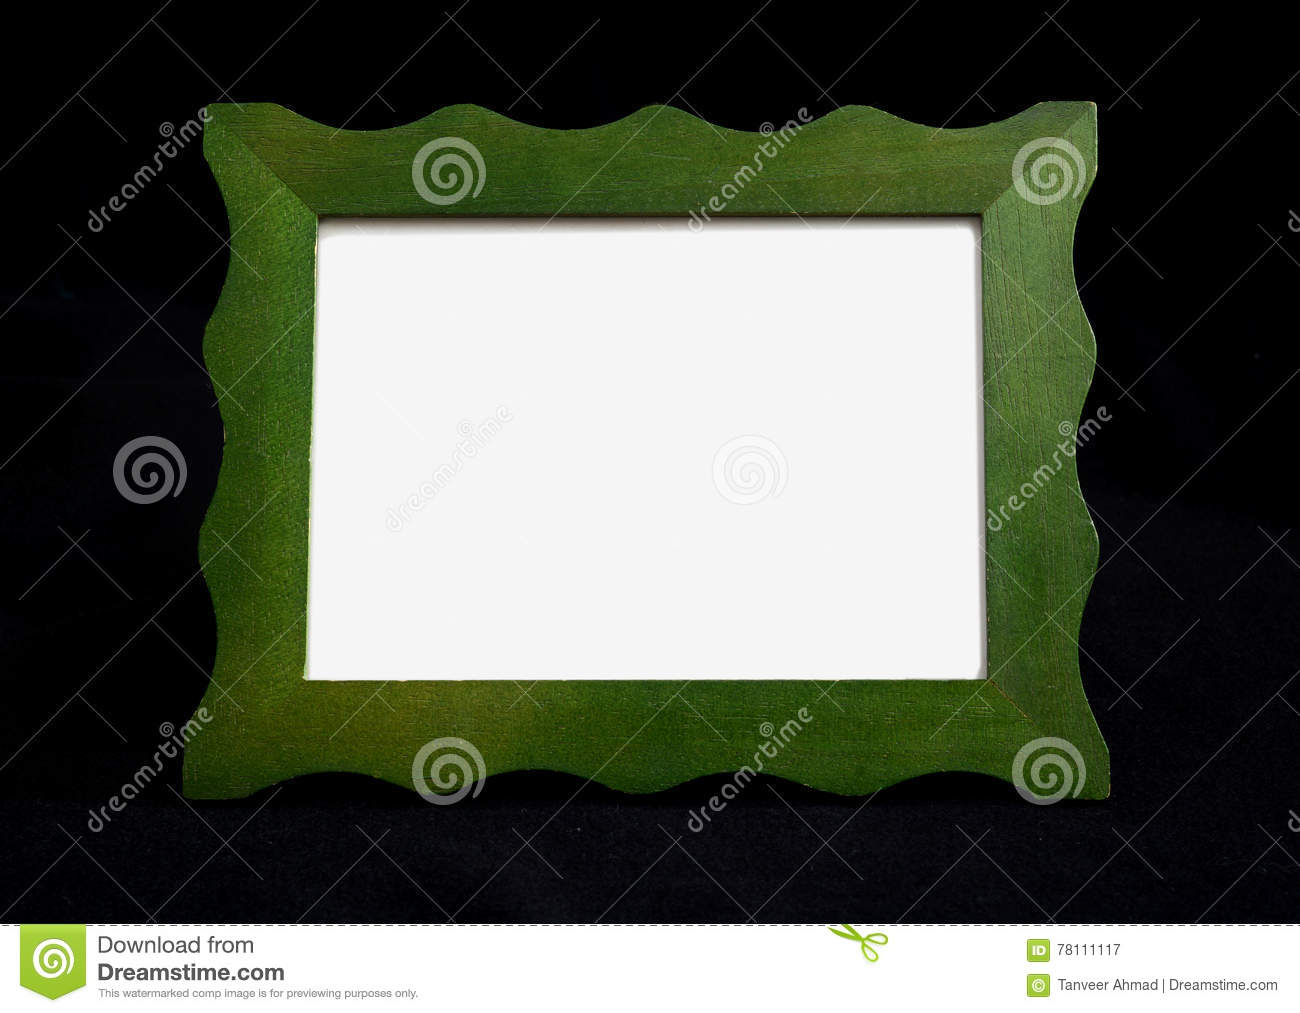 Green Frame Chalkboard On Black With Copy Space Stock Image - Image ...